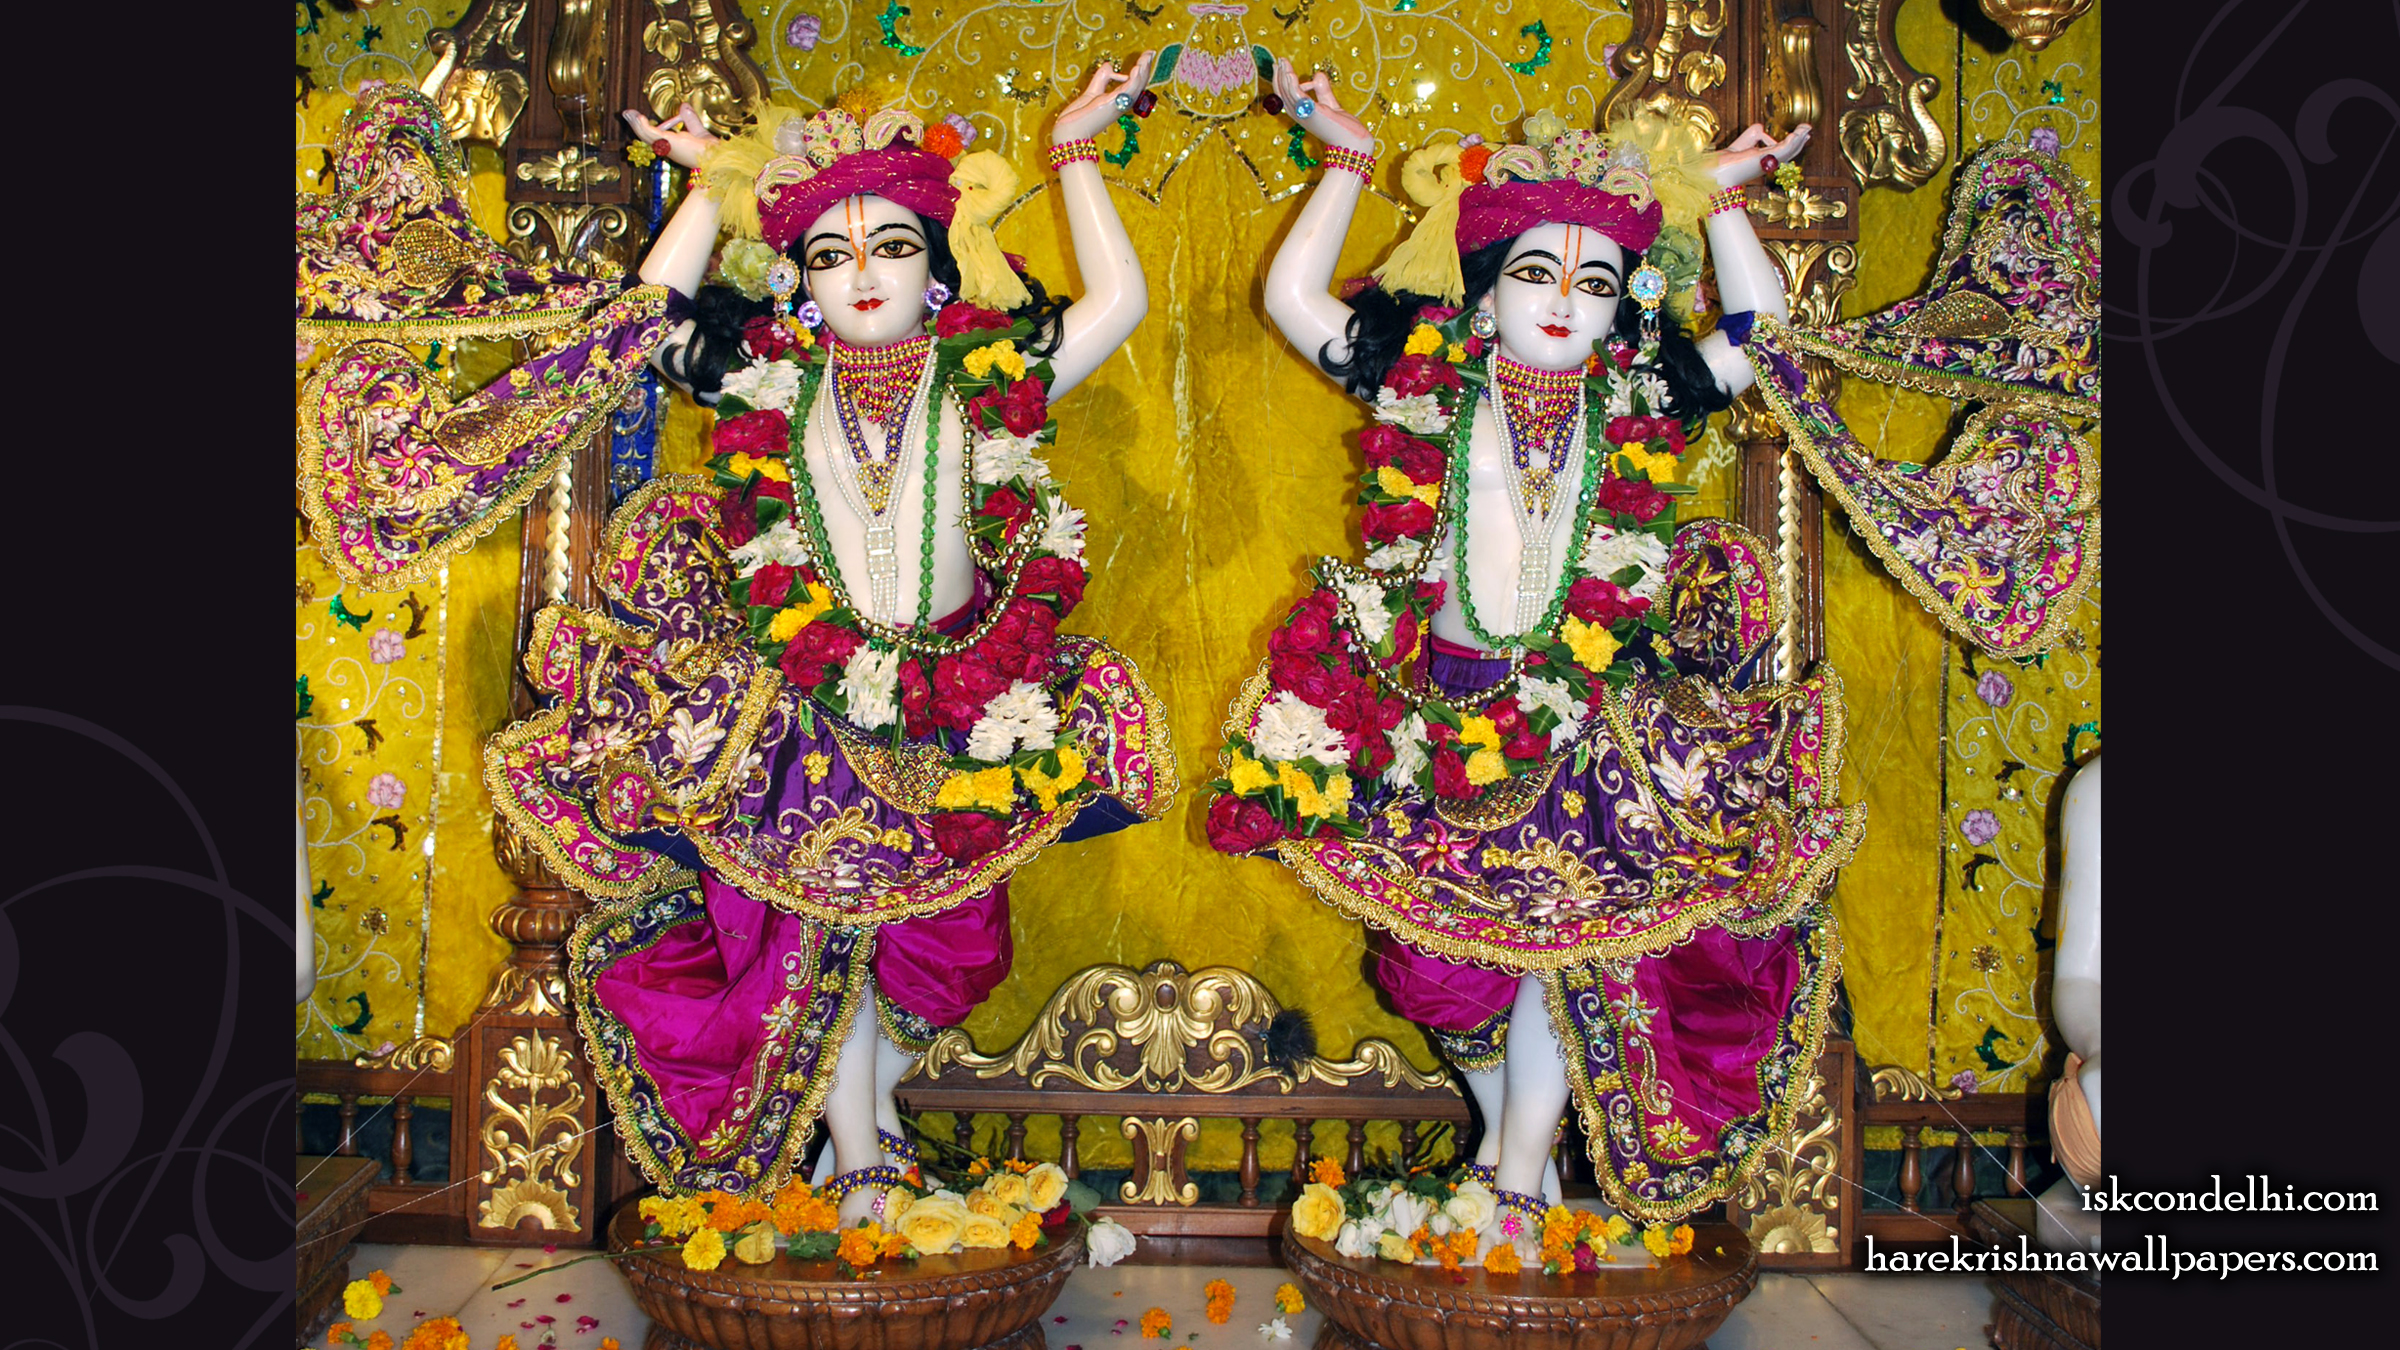 Sri Sri Gaura Nitai Wallpaper (006) Size 2400x1350 Download